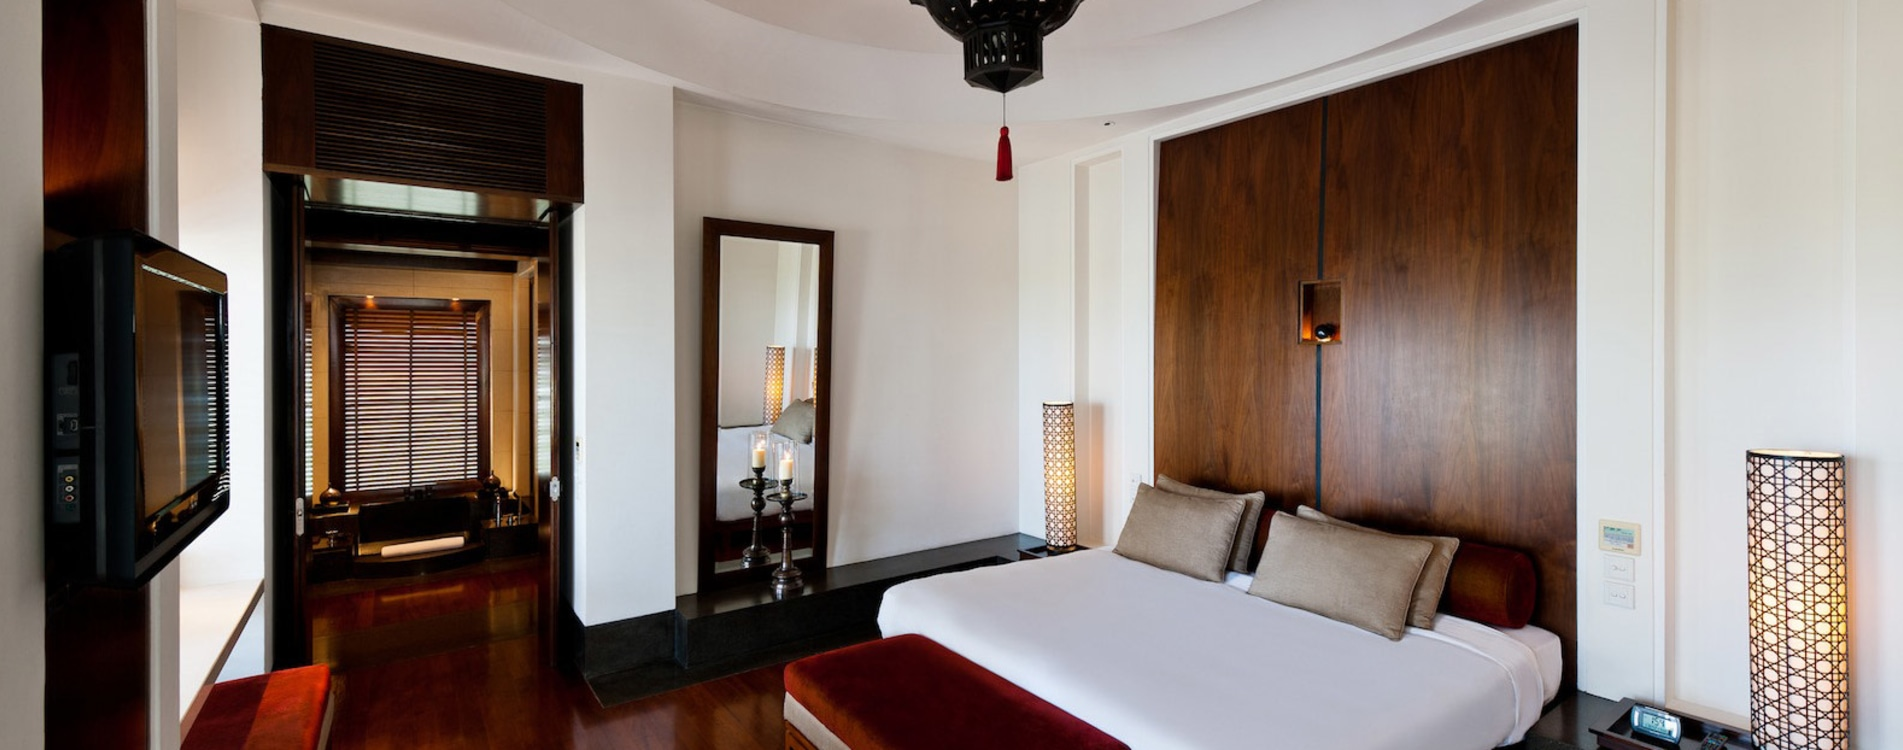 Chedi-Muscat-Club-Suite-Bedroom.jpg